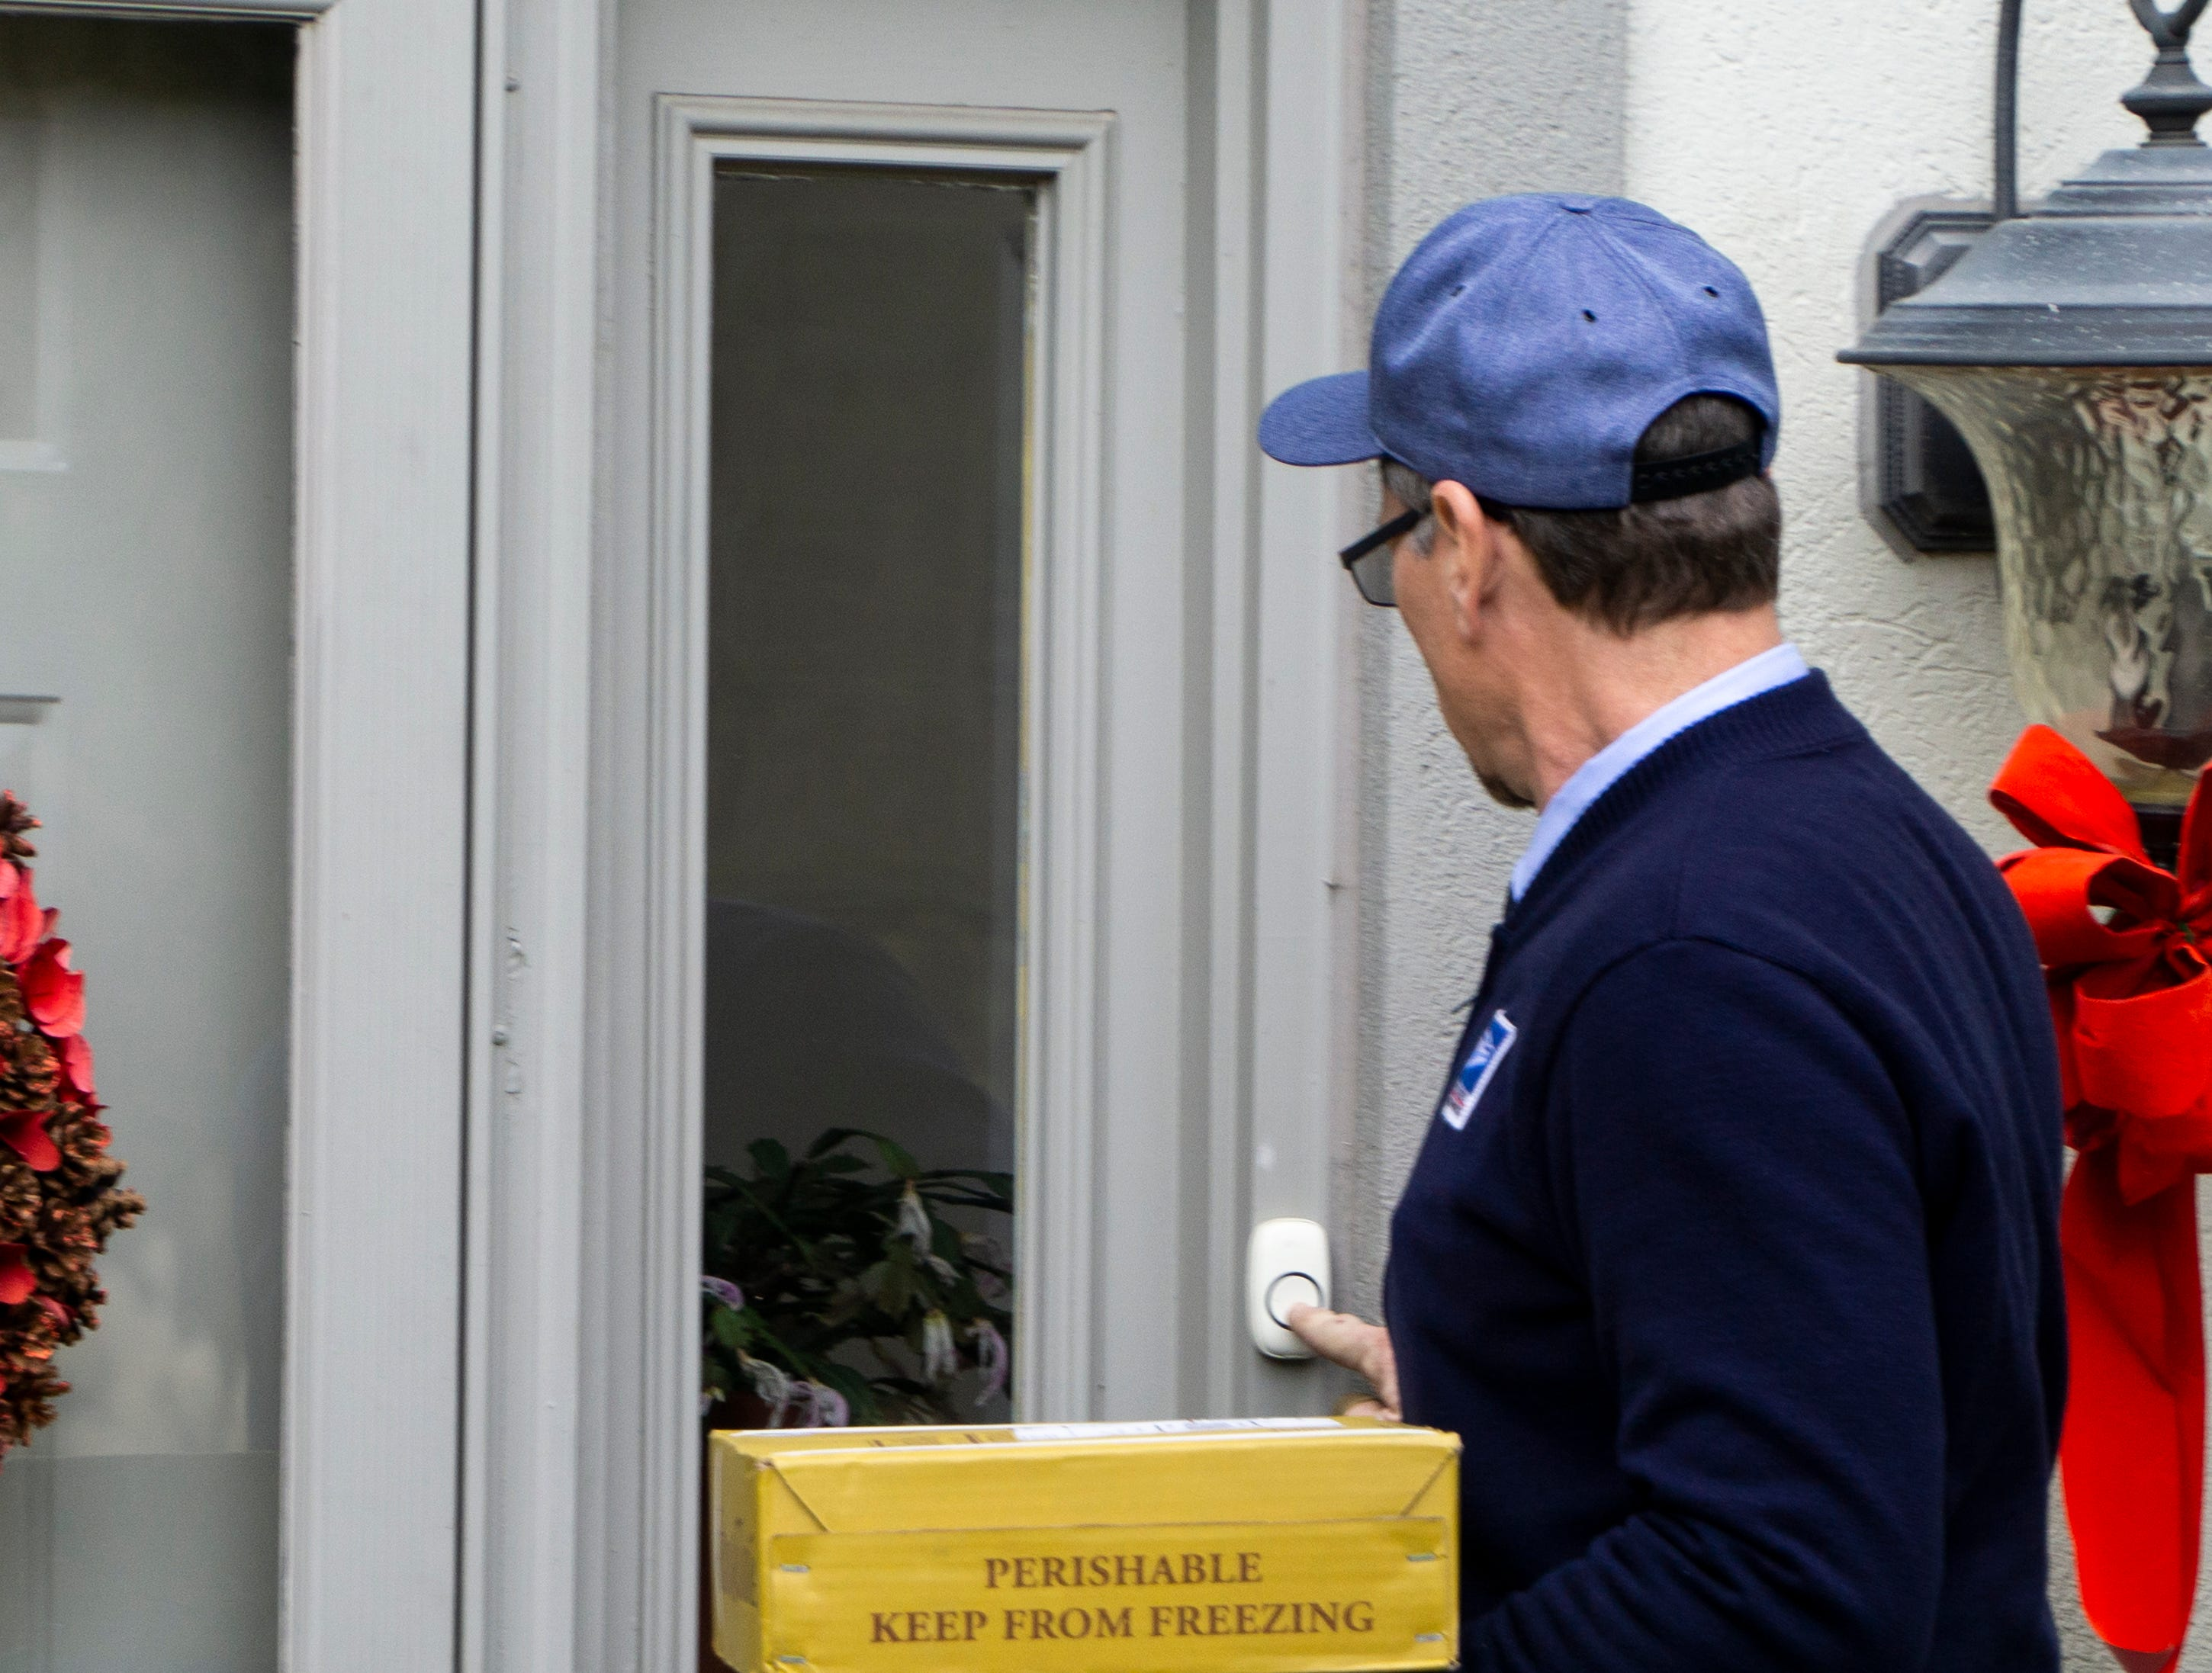 Bryan Lay delivers a package to a West Knoxville home on Friday, Dec. 7. USPS says it will deliver some 900 million packages this holiday season, which runs from Thanksgiving to New Year's Eve.